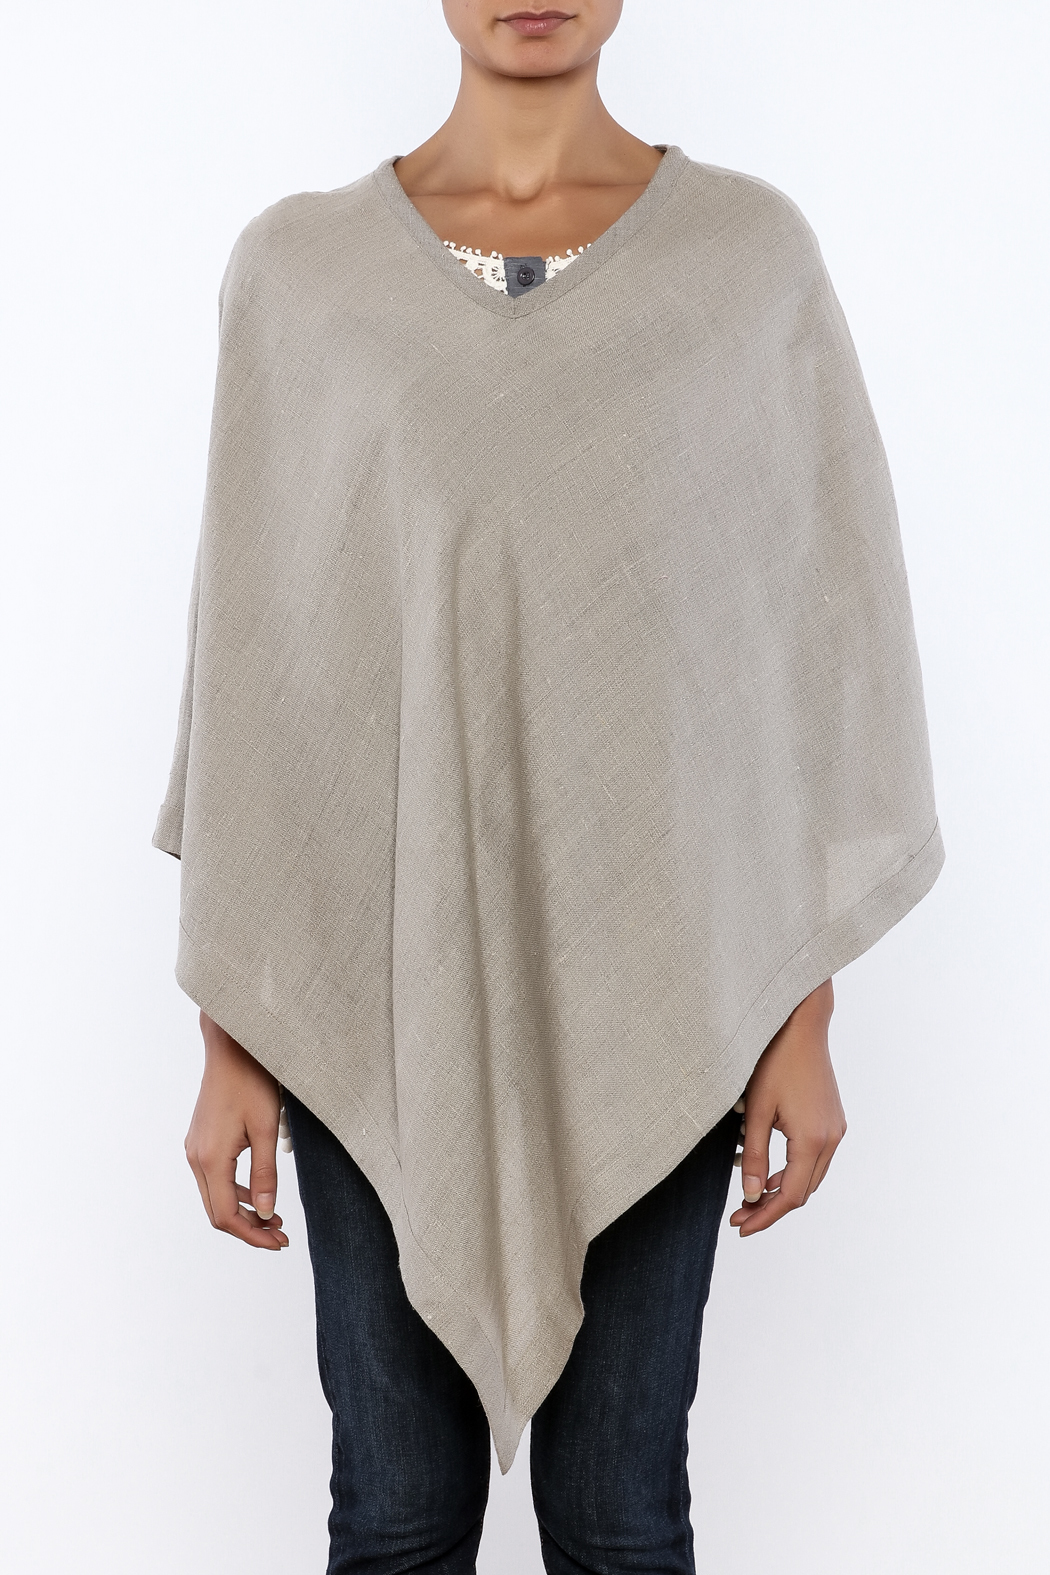 Crown Linen Designs Linen Poncho - Side Cropped Image